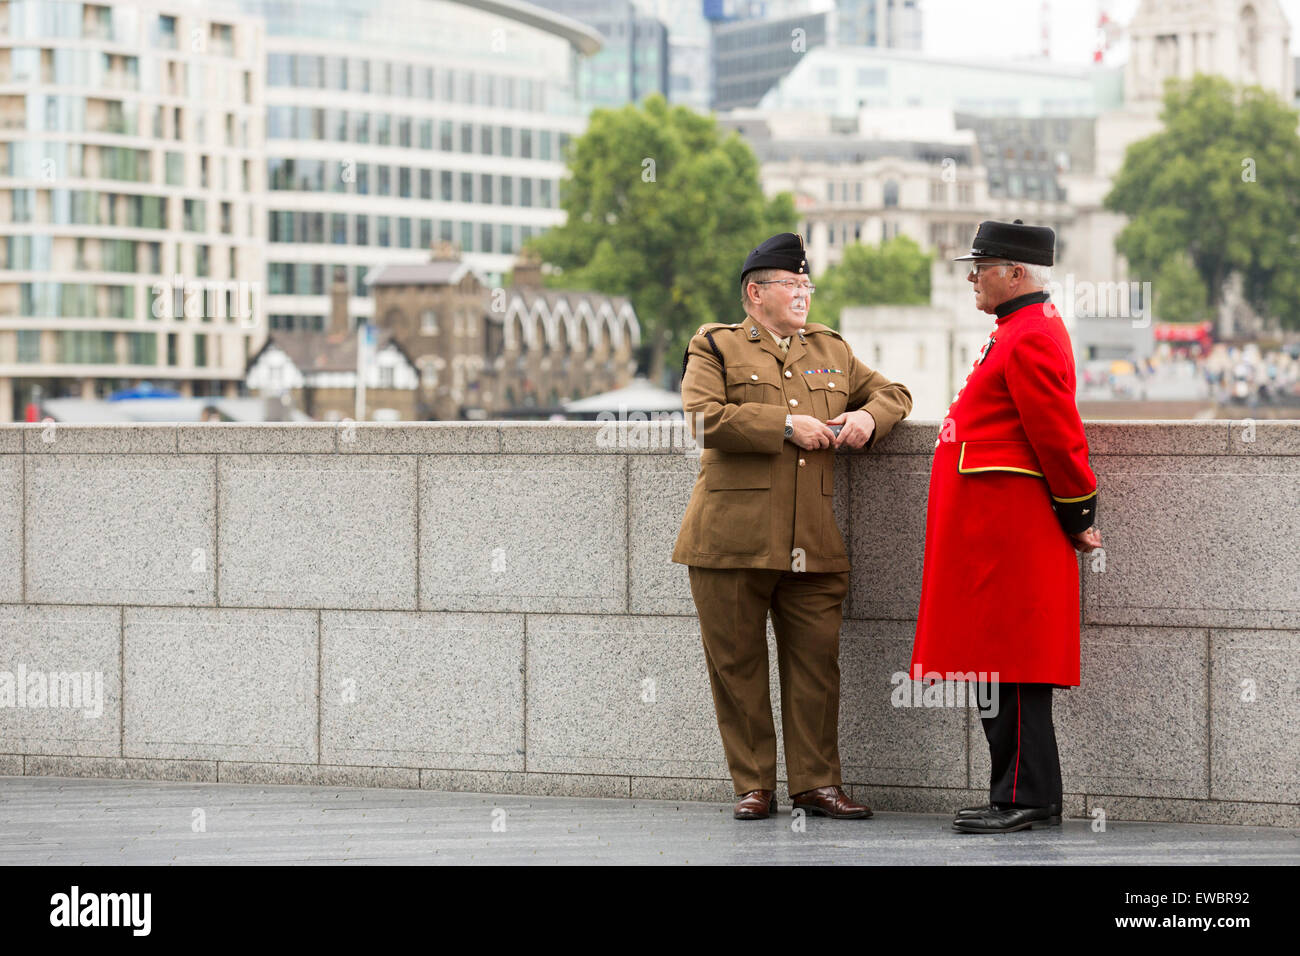 London, UK. 22 June 2015. A soldier and a Chelsea Pensioner in conversation before the event. Boris Johnson, the - Stock Image